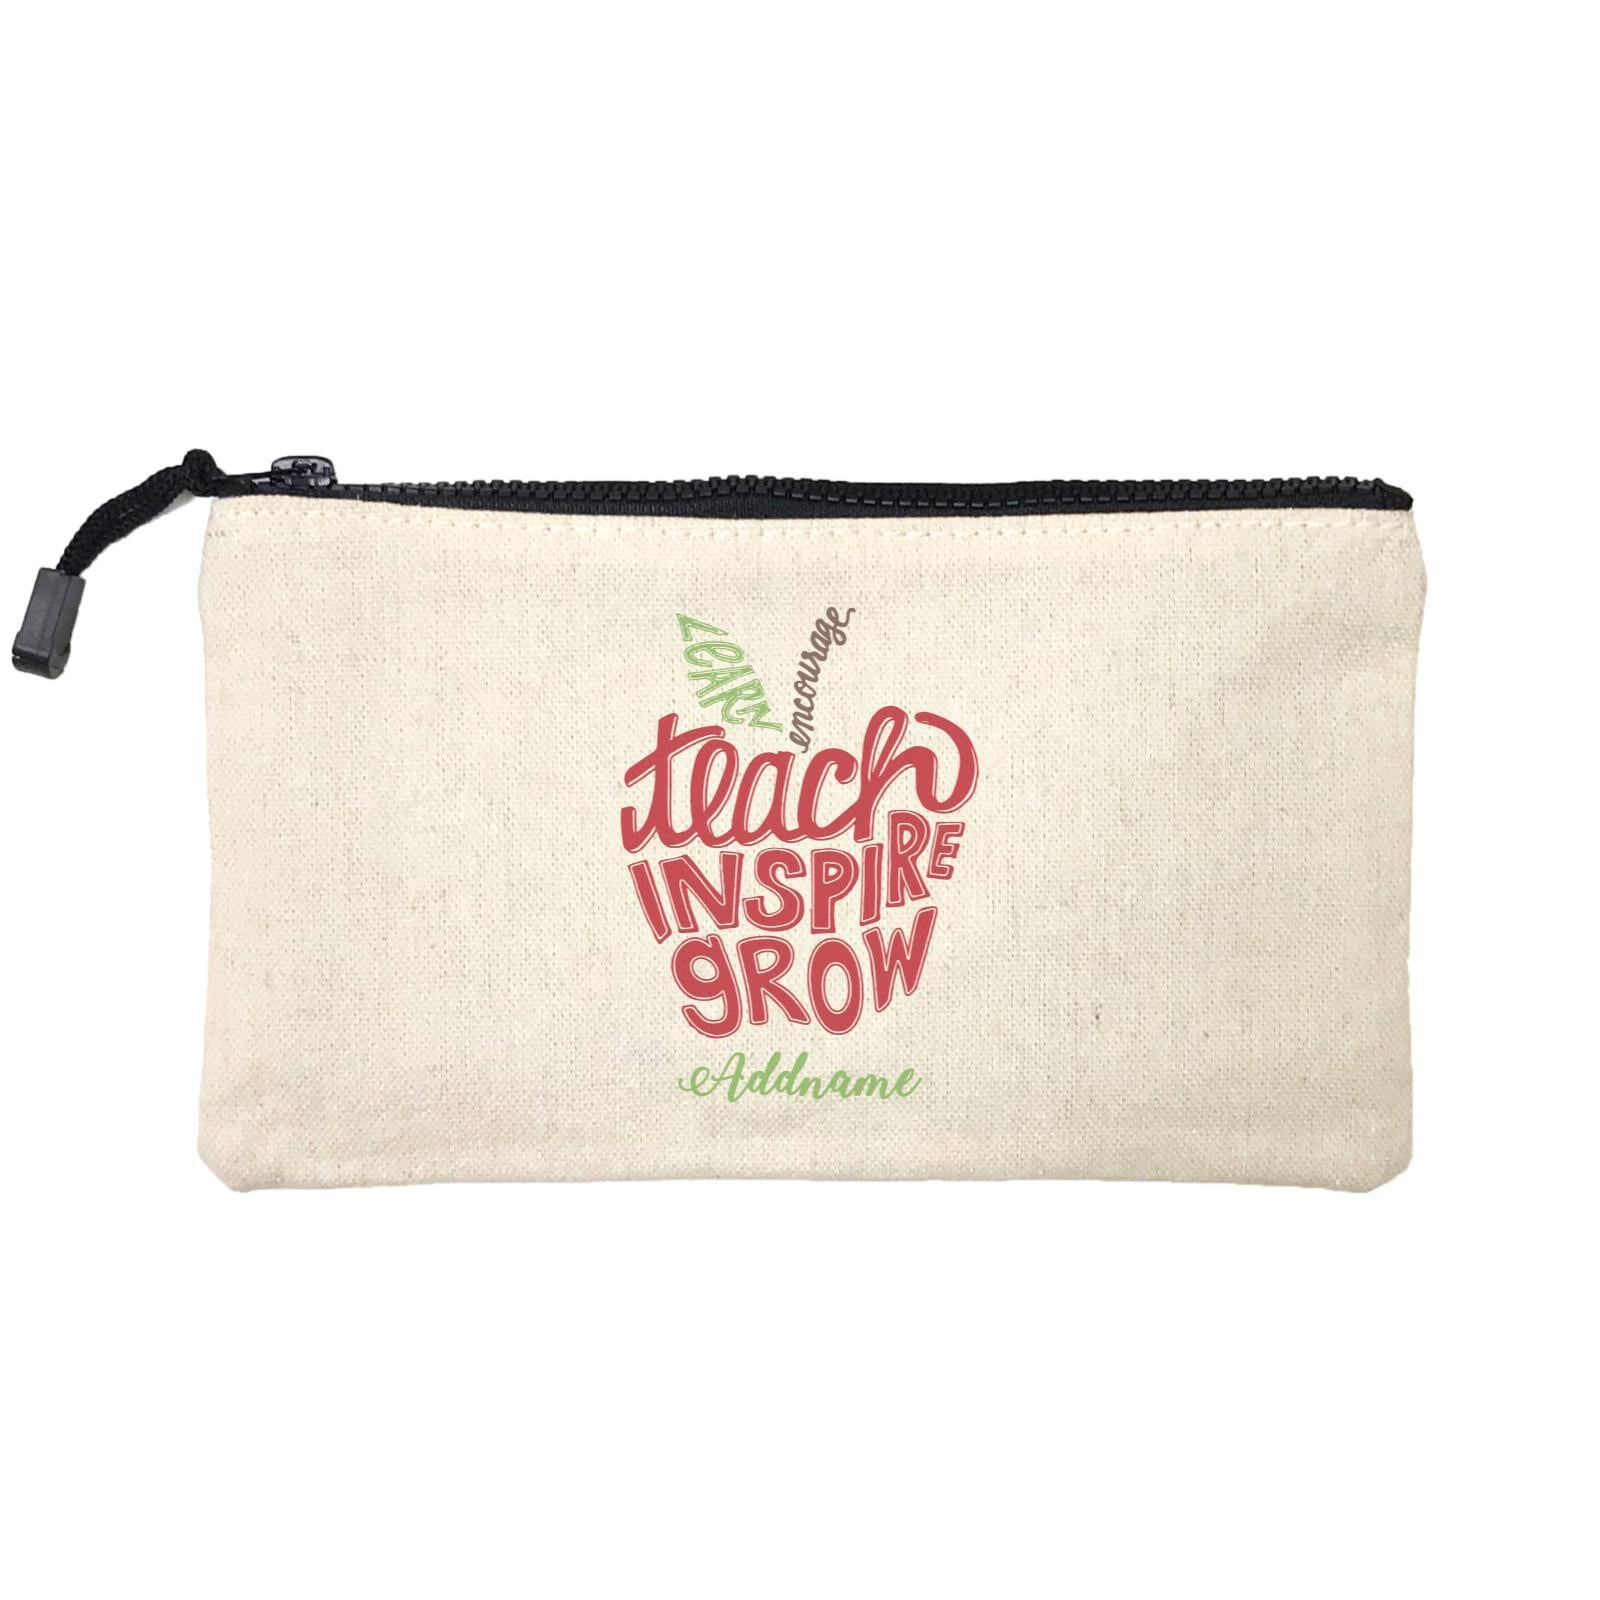 Teacher Apple Learn Encourage Teacher Inspire Grow Addname Mini Accessories Stationery Pouch